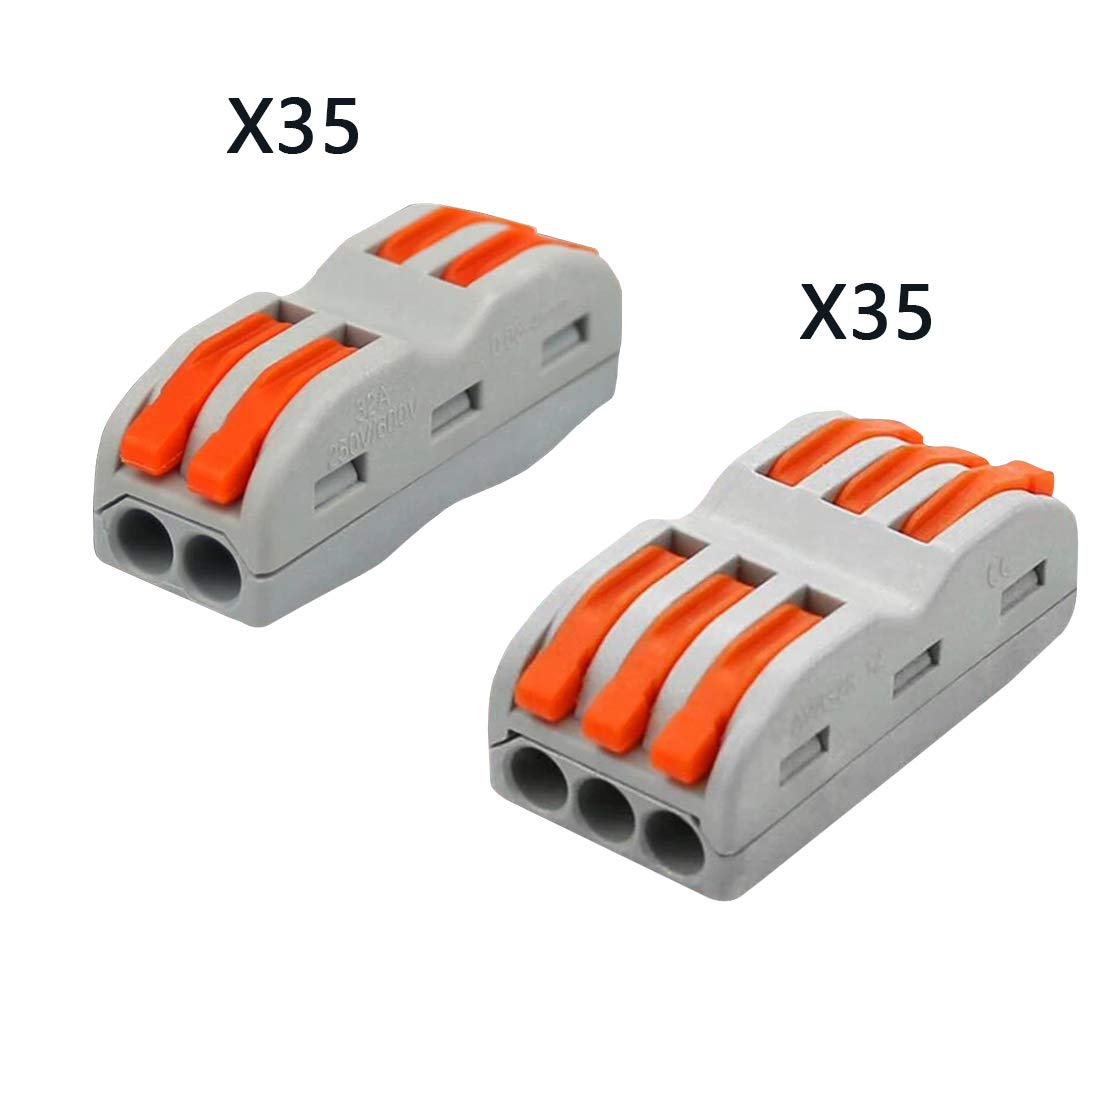 Lever-Nut,Wire Connector,Assortment Pack Conductor Compact Wire Connectors.(SPL-2,35PCS SPL-3, 35PCS)70PCS by UOHGDPY (Image #1)